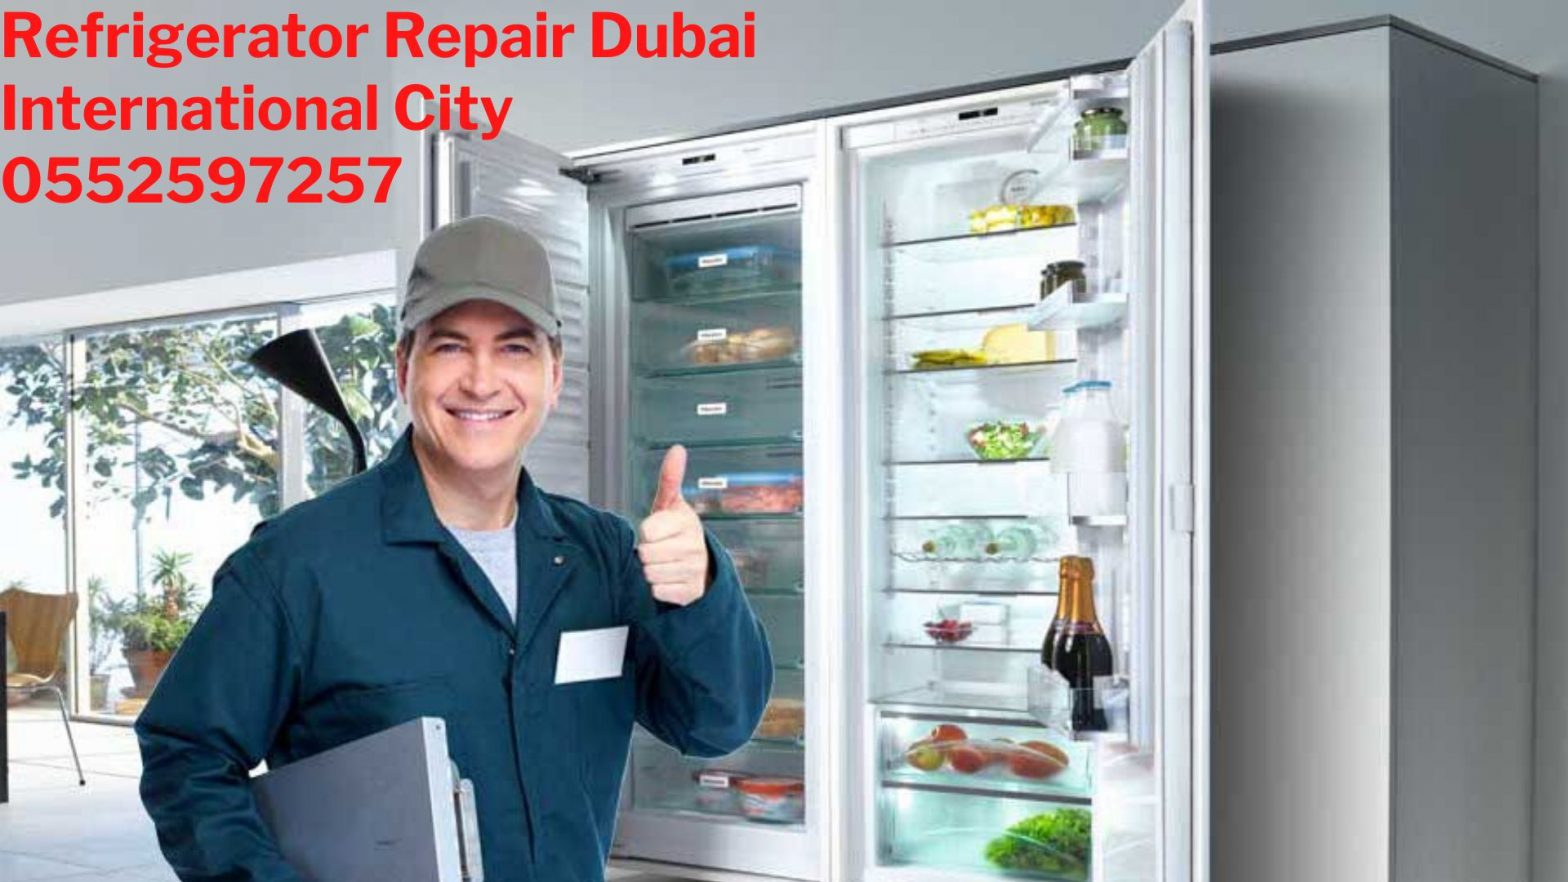 Refrigerator repair Dubai international city